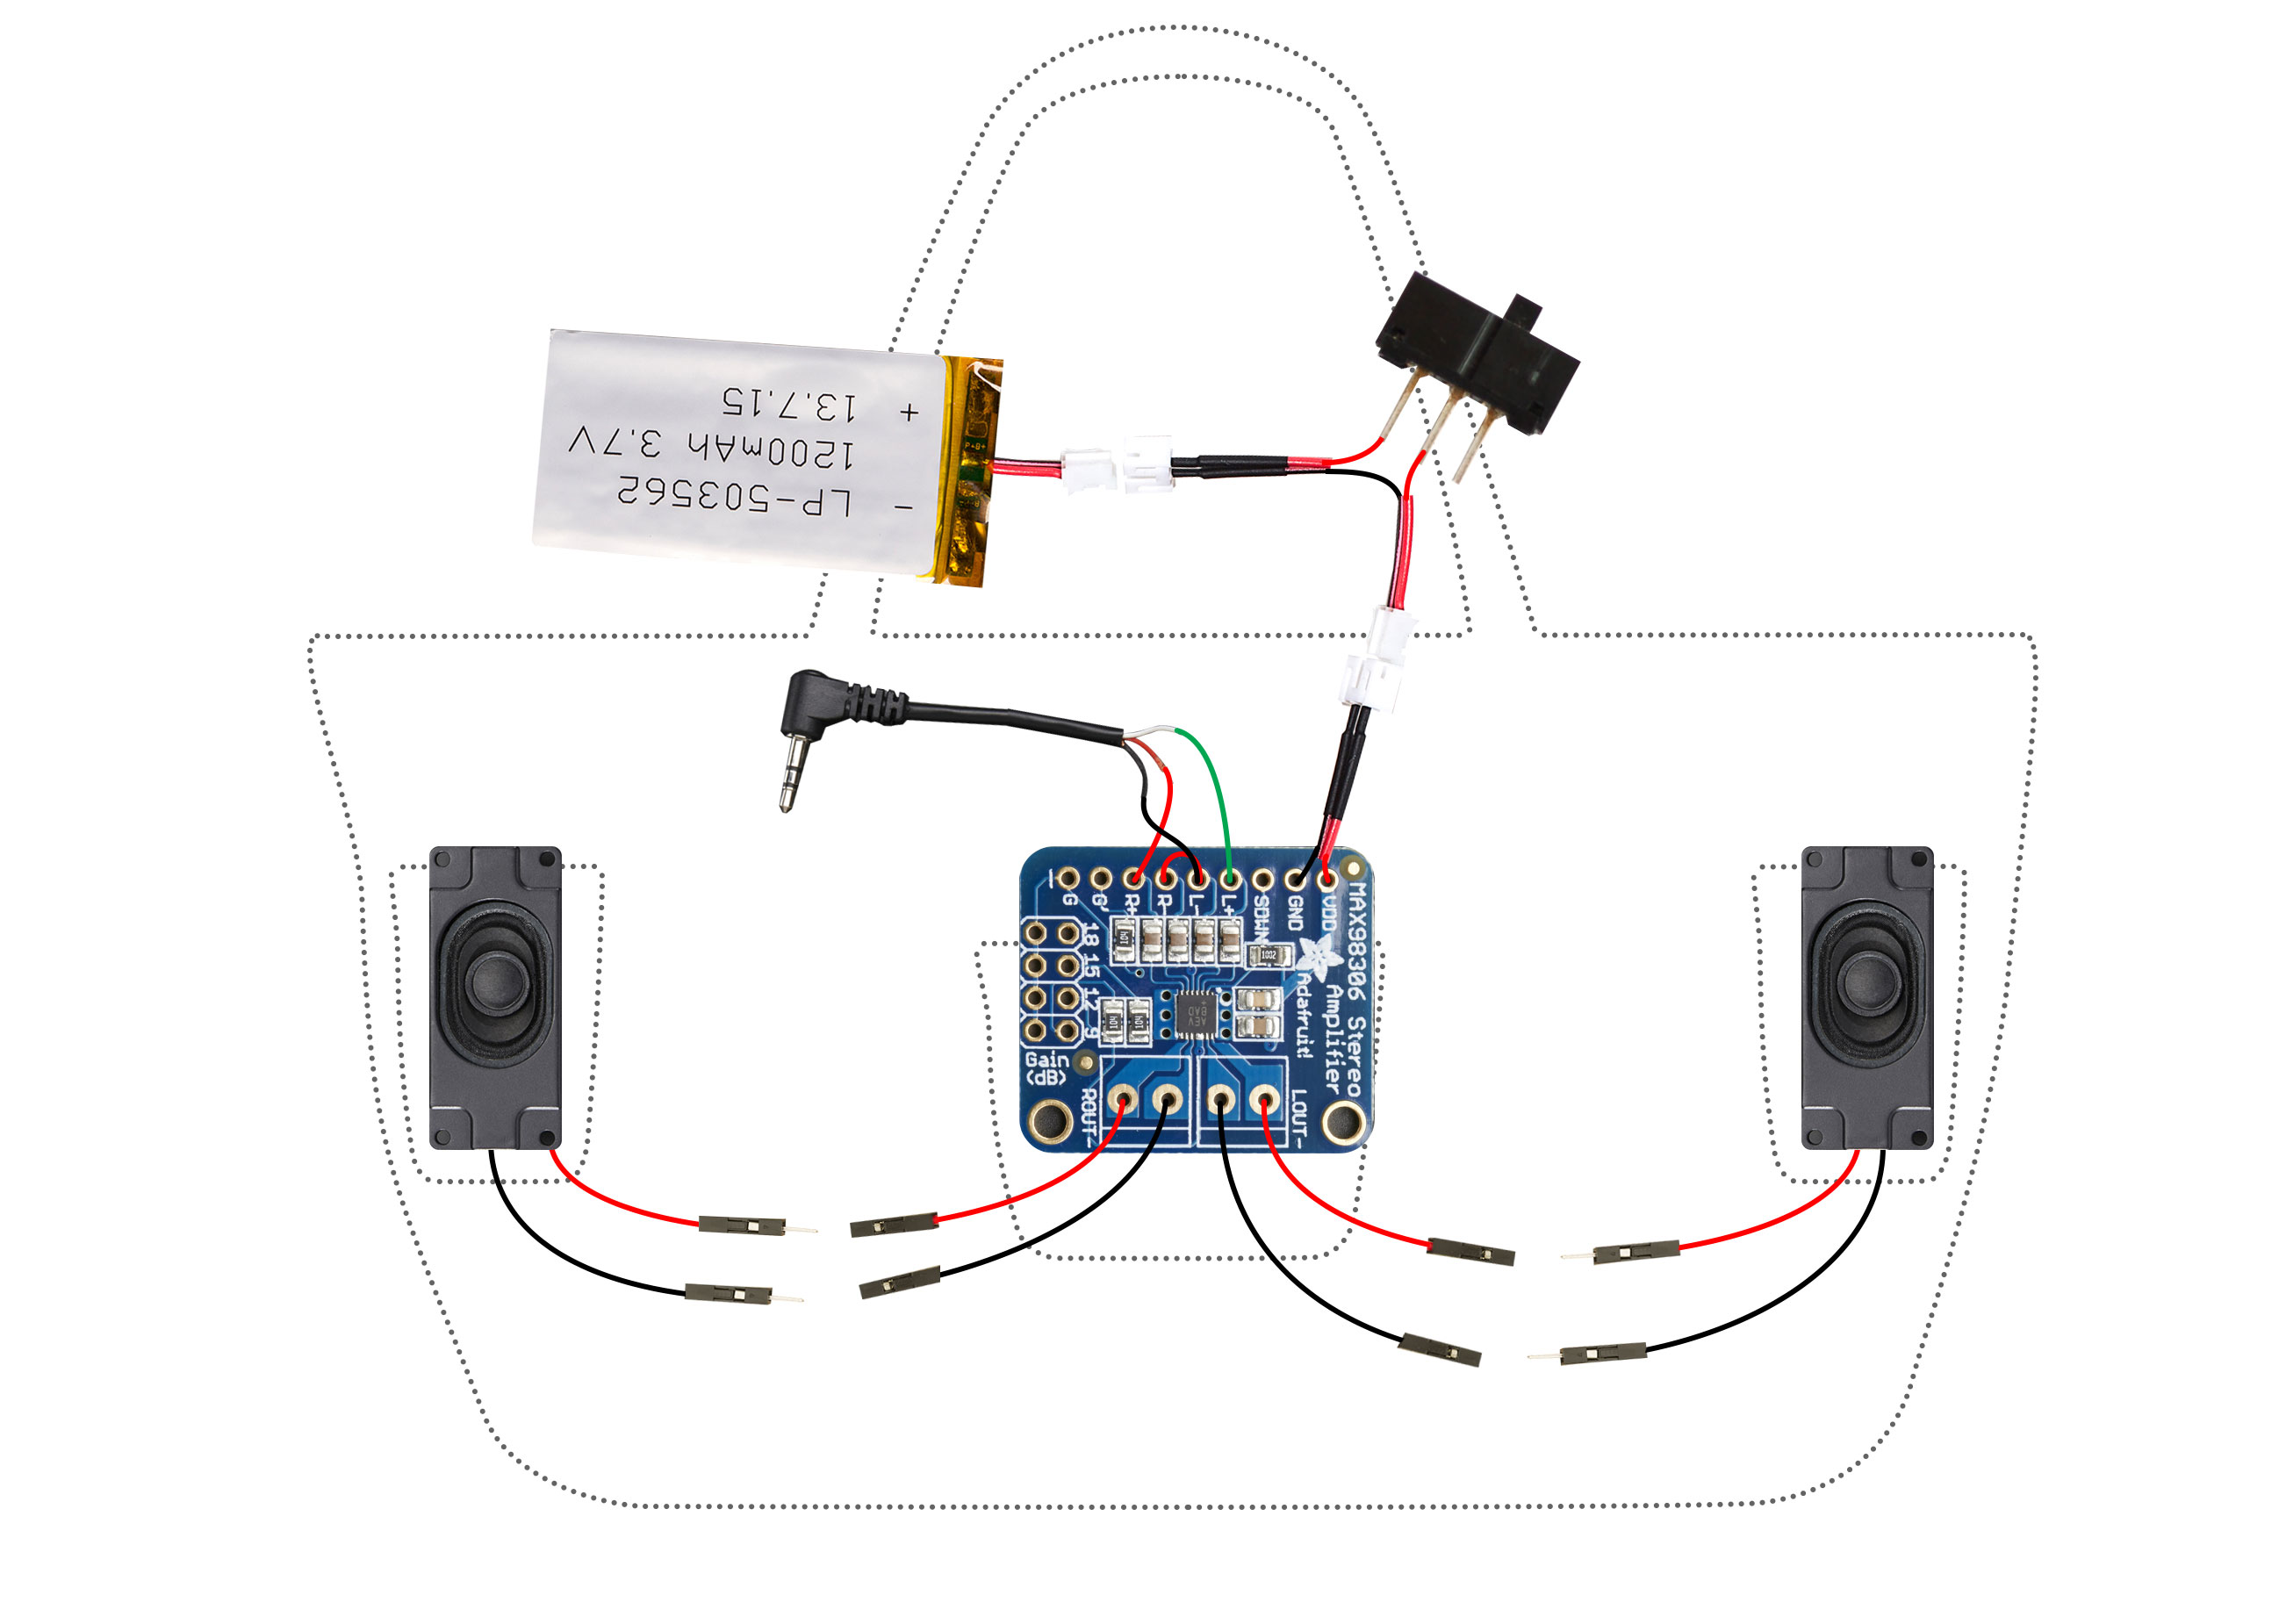 Circuit Diagram Boombox Beach Bag With Audio Amp And Speakers 2 Way Speaker Crossover Wiring 3d Printing Layout